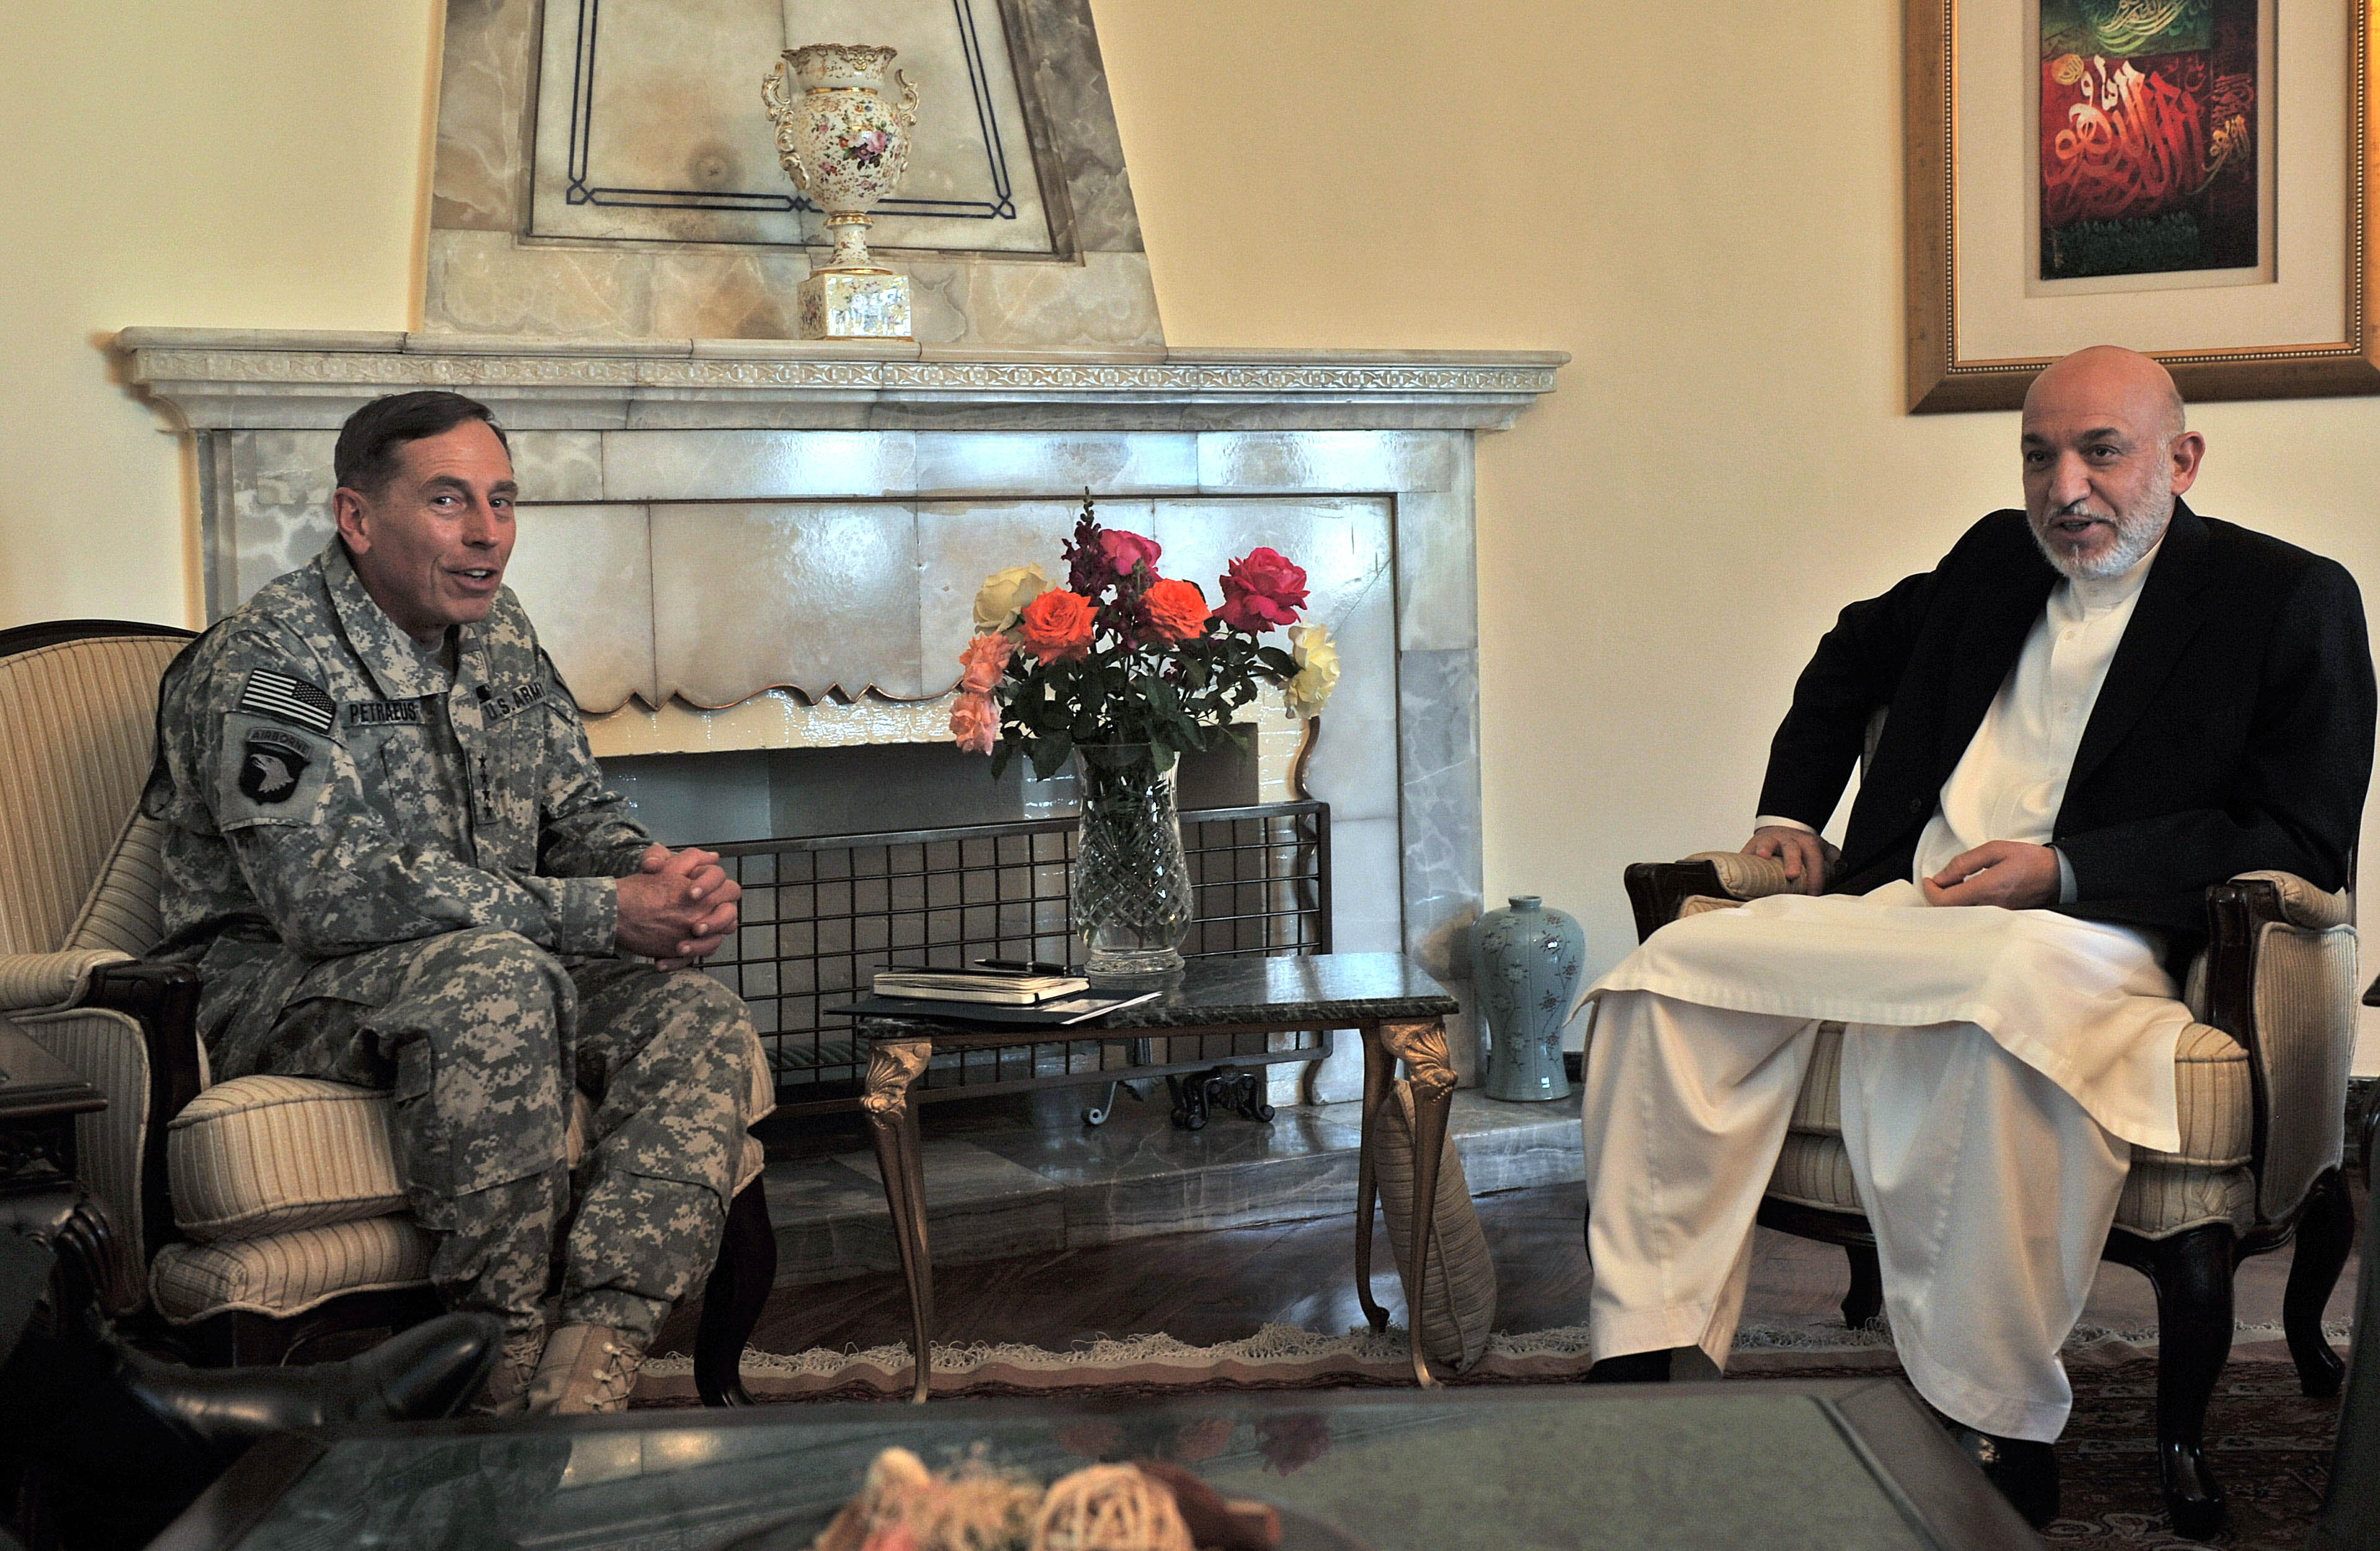 Afghan President Hamid Karzai, right, and commander of NATO forces in Afghanistan U.S. Gen. David Petraeus talk during a meeting at the Presidential P...